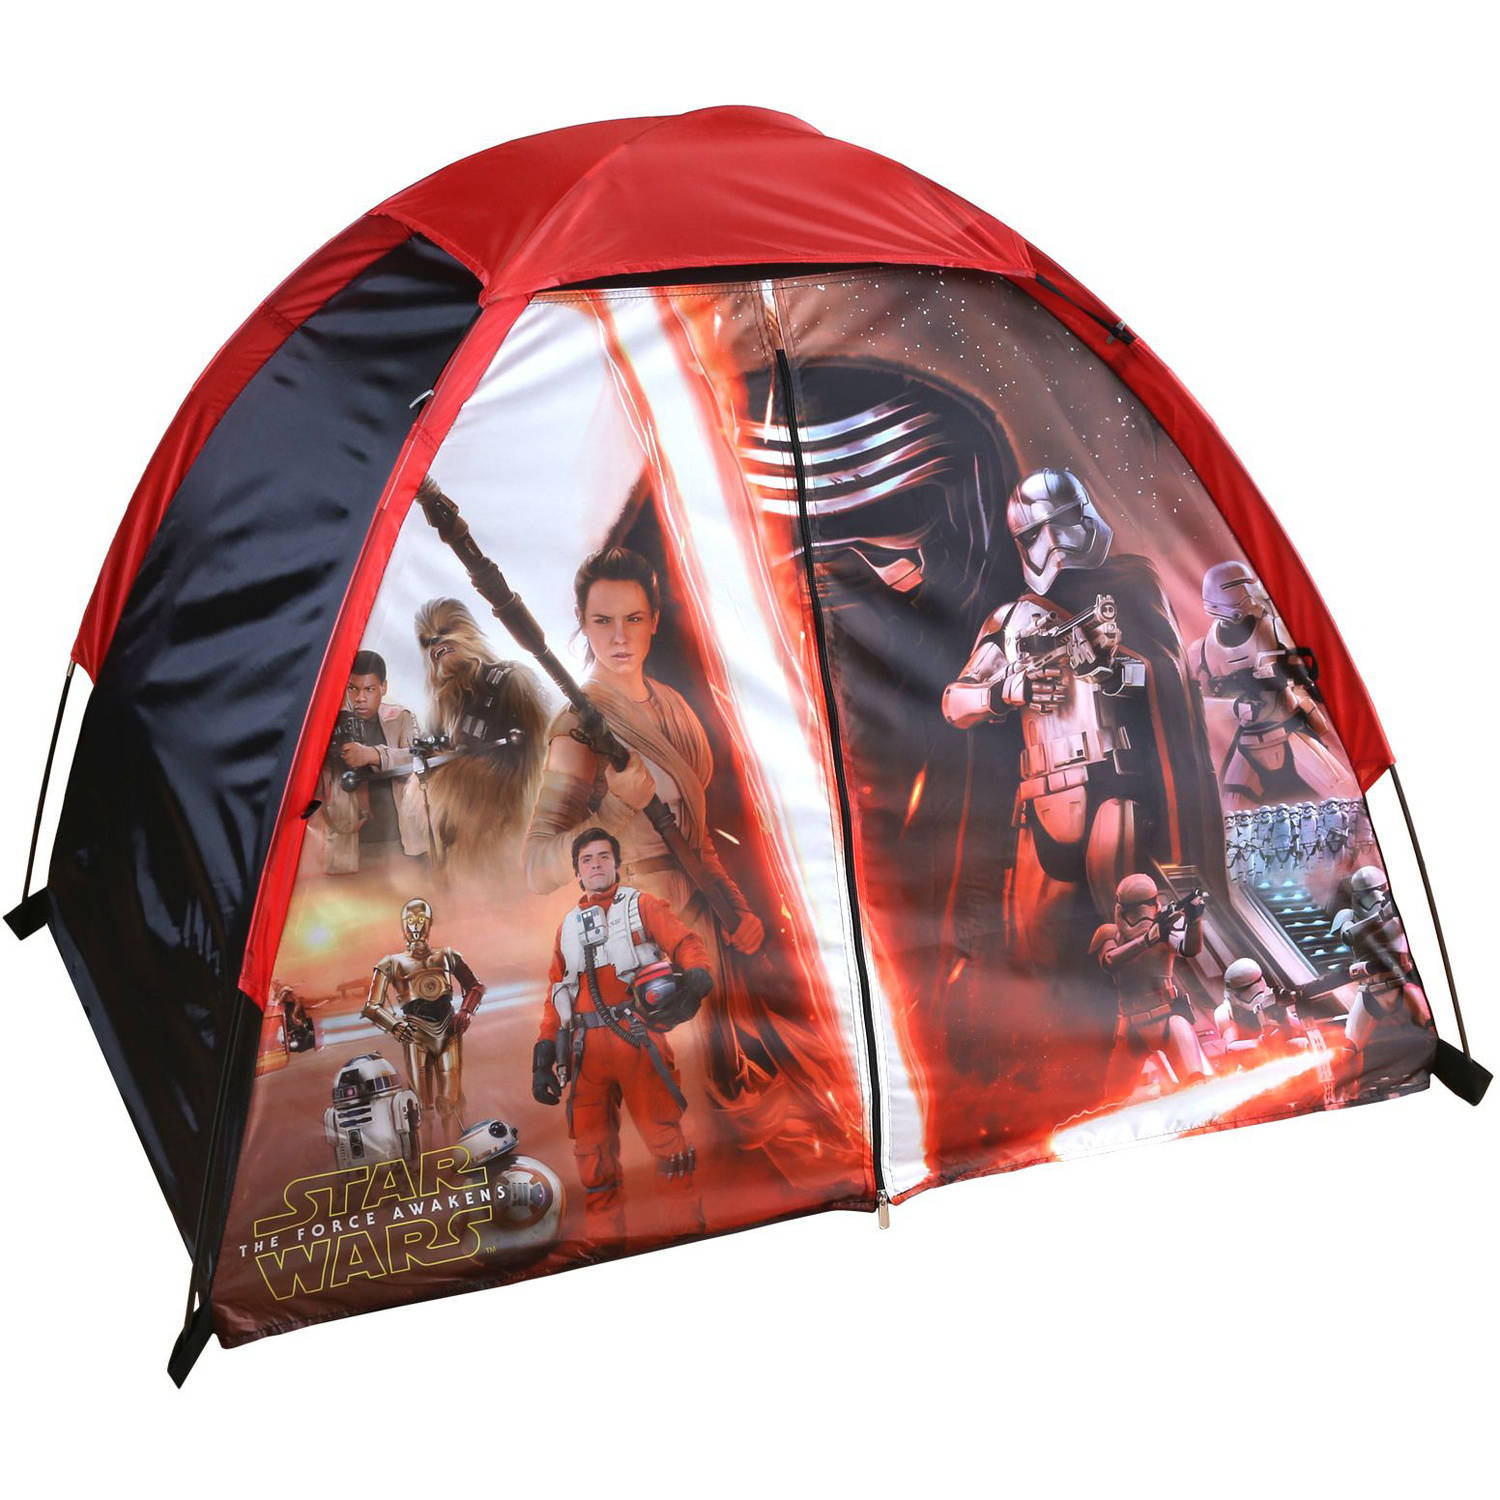 Star Wars 2-Pole Kids Dome Tent  sc 1 st  Walmart & Star Wars 2-Pole Kids Dome Tent - Walmart.com